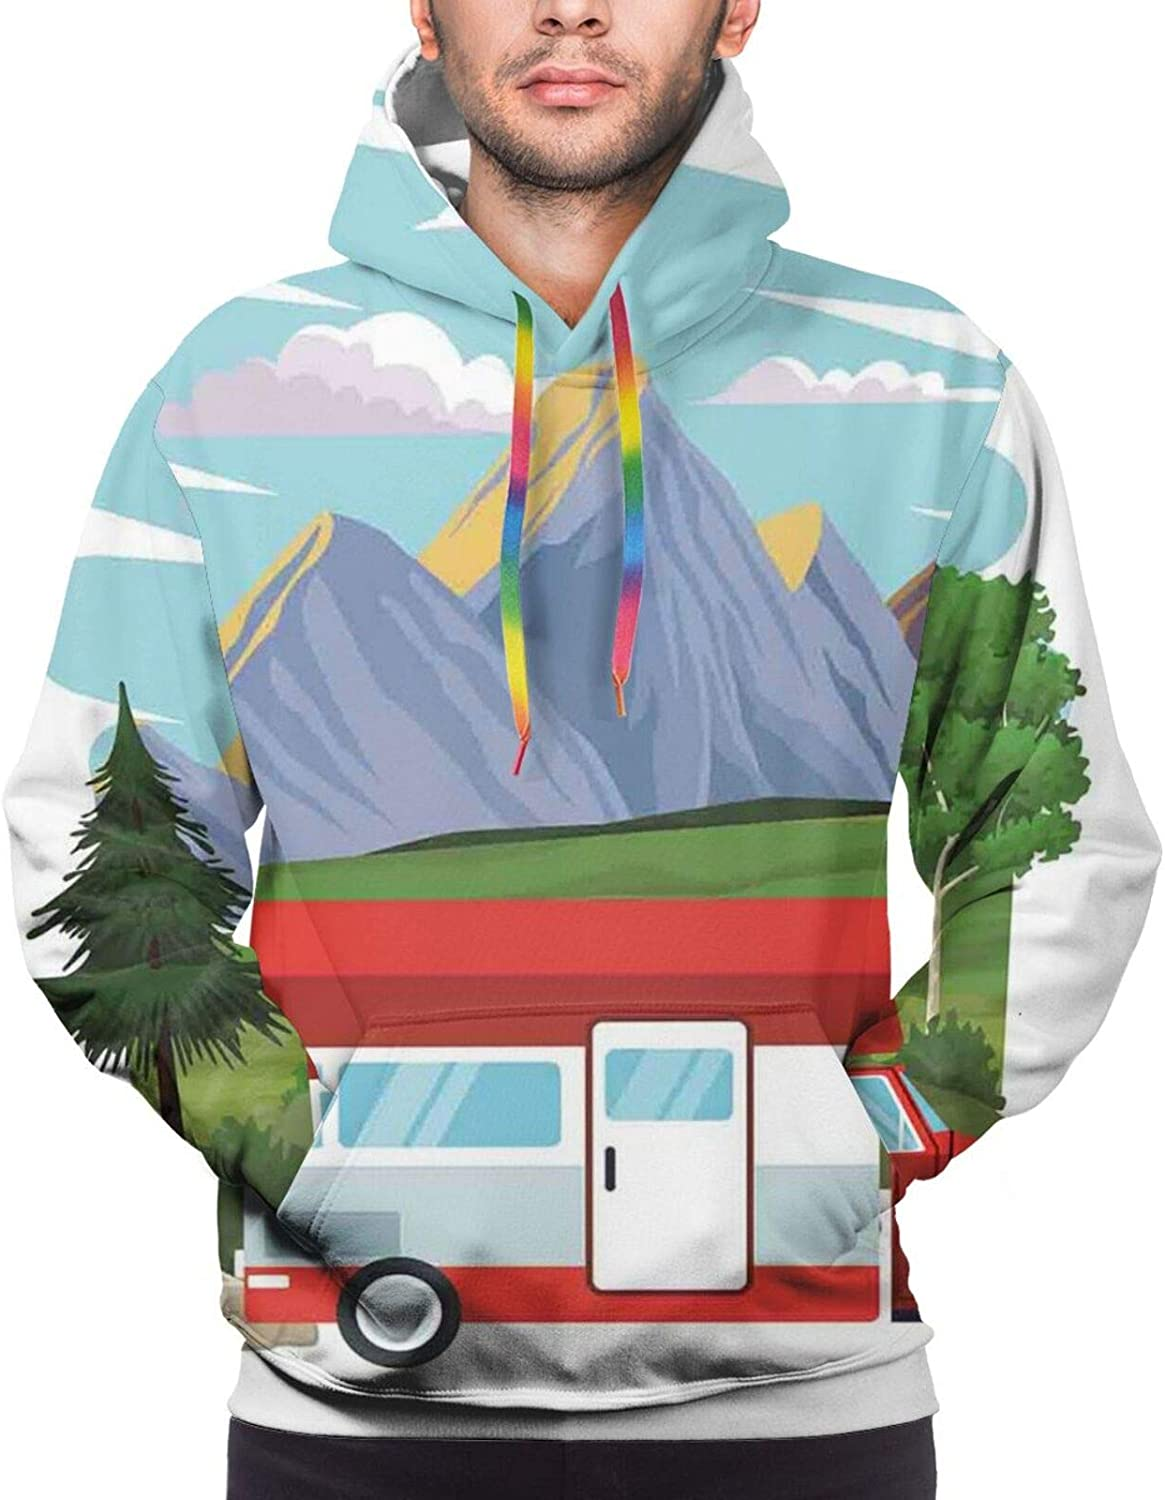 Men's Hoodies Sweatshirts,Car Racing Speedy Inspired Illustration Need for Speed Road Competition Motorsports Theme